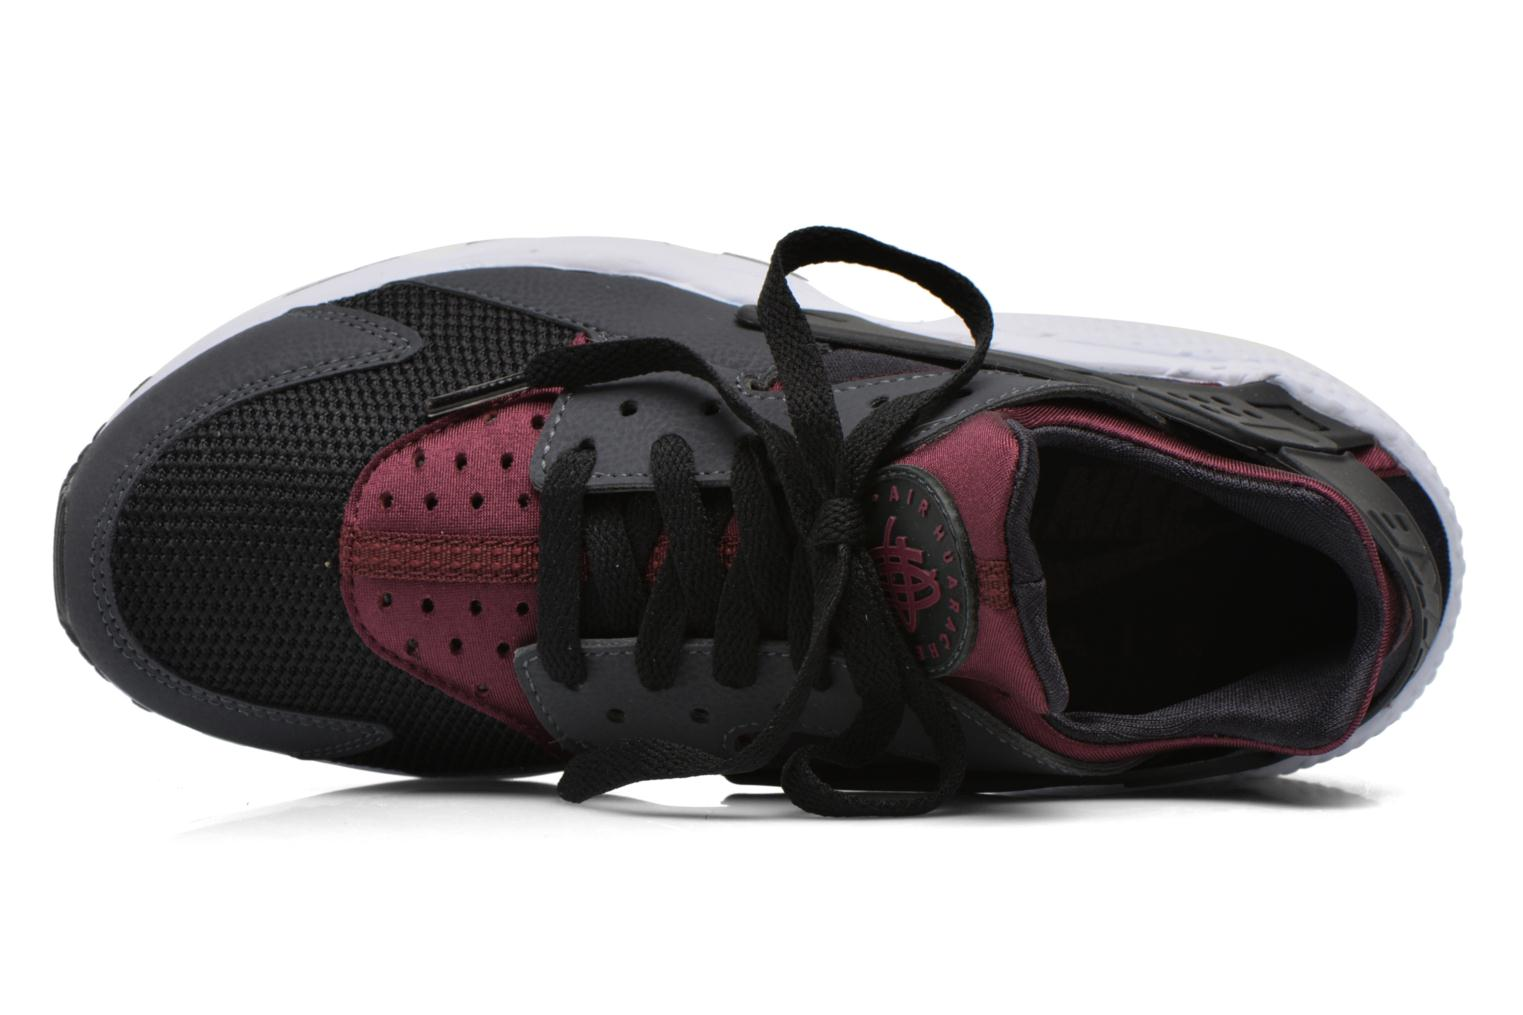 Nike Air Huarache Anthrct/Nght Mrn-Nght Mrn-Blk